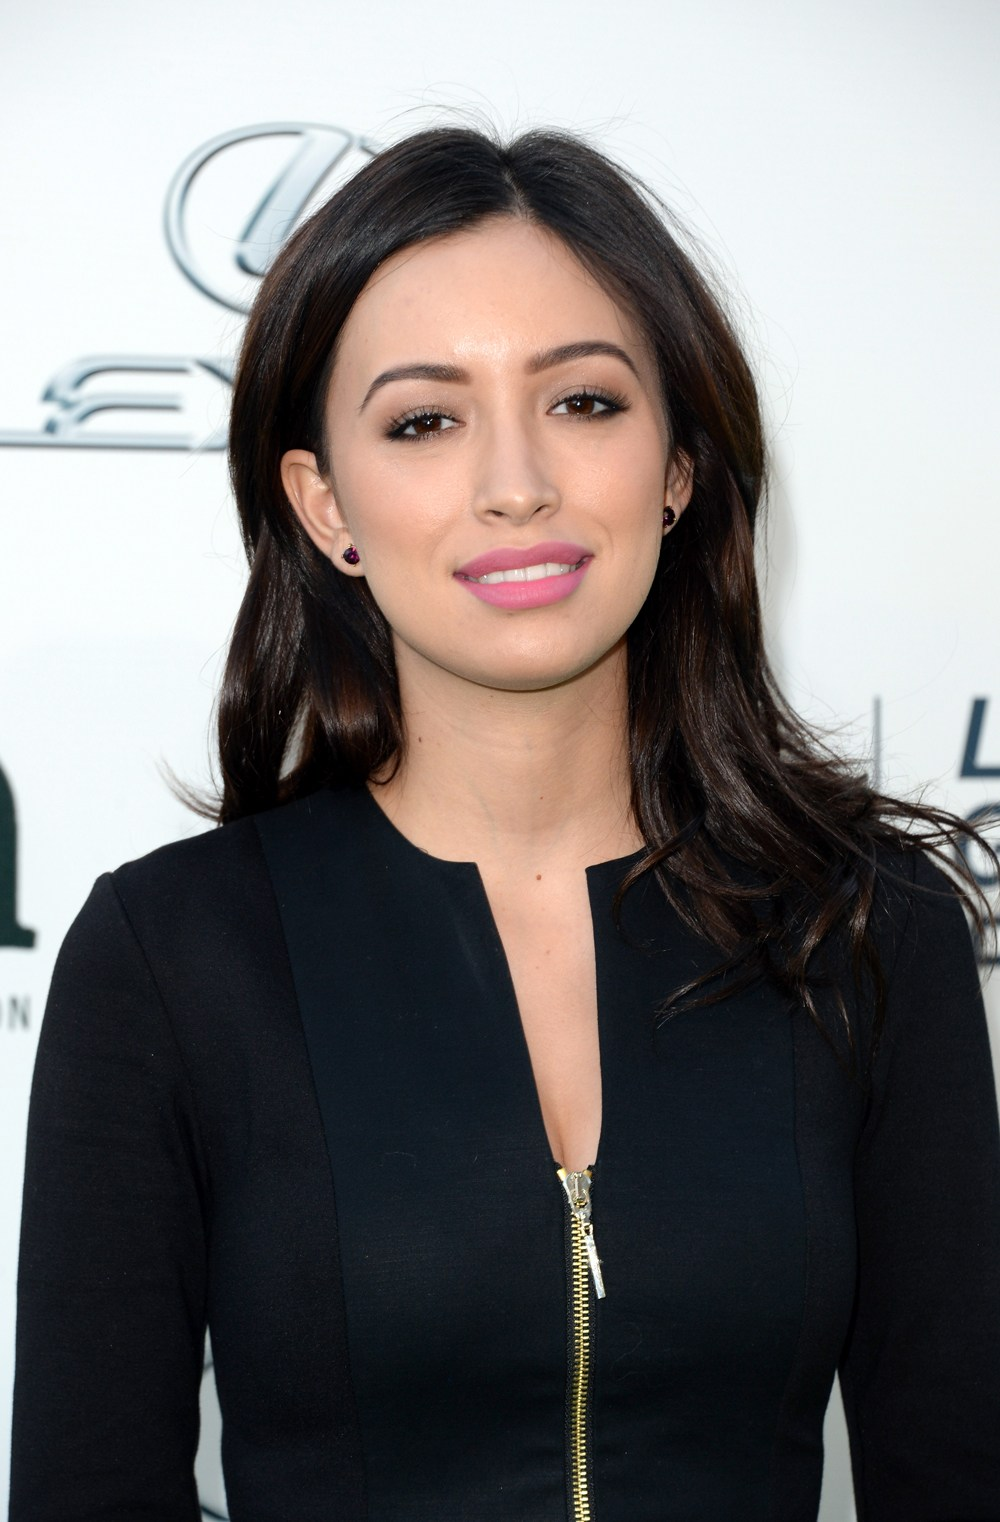 Christian-Serratos-as-Rosita-on-The-Walking-Dead.jpg